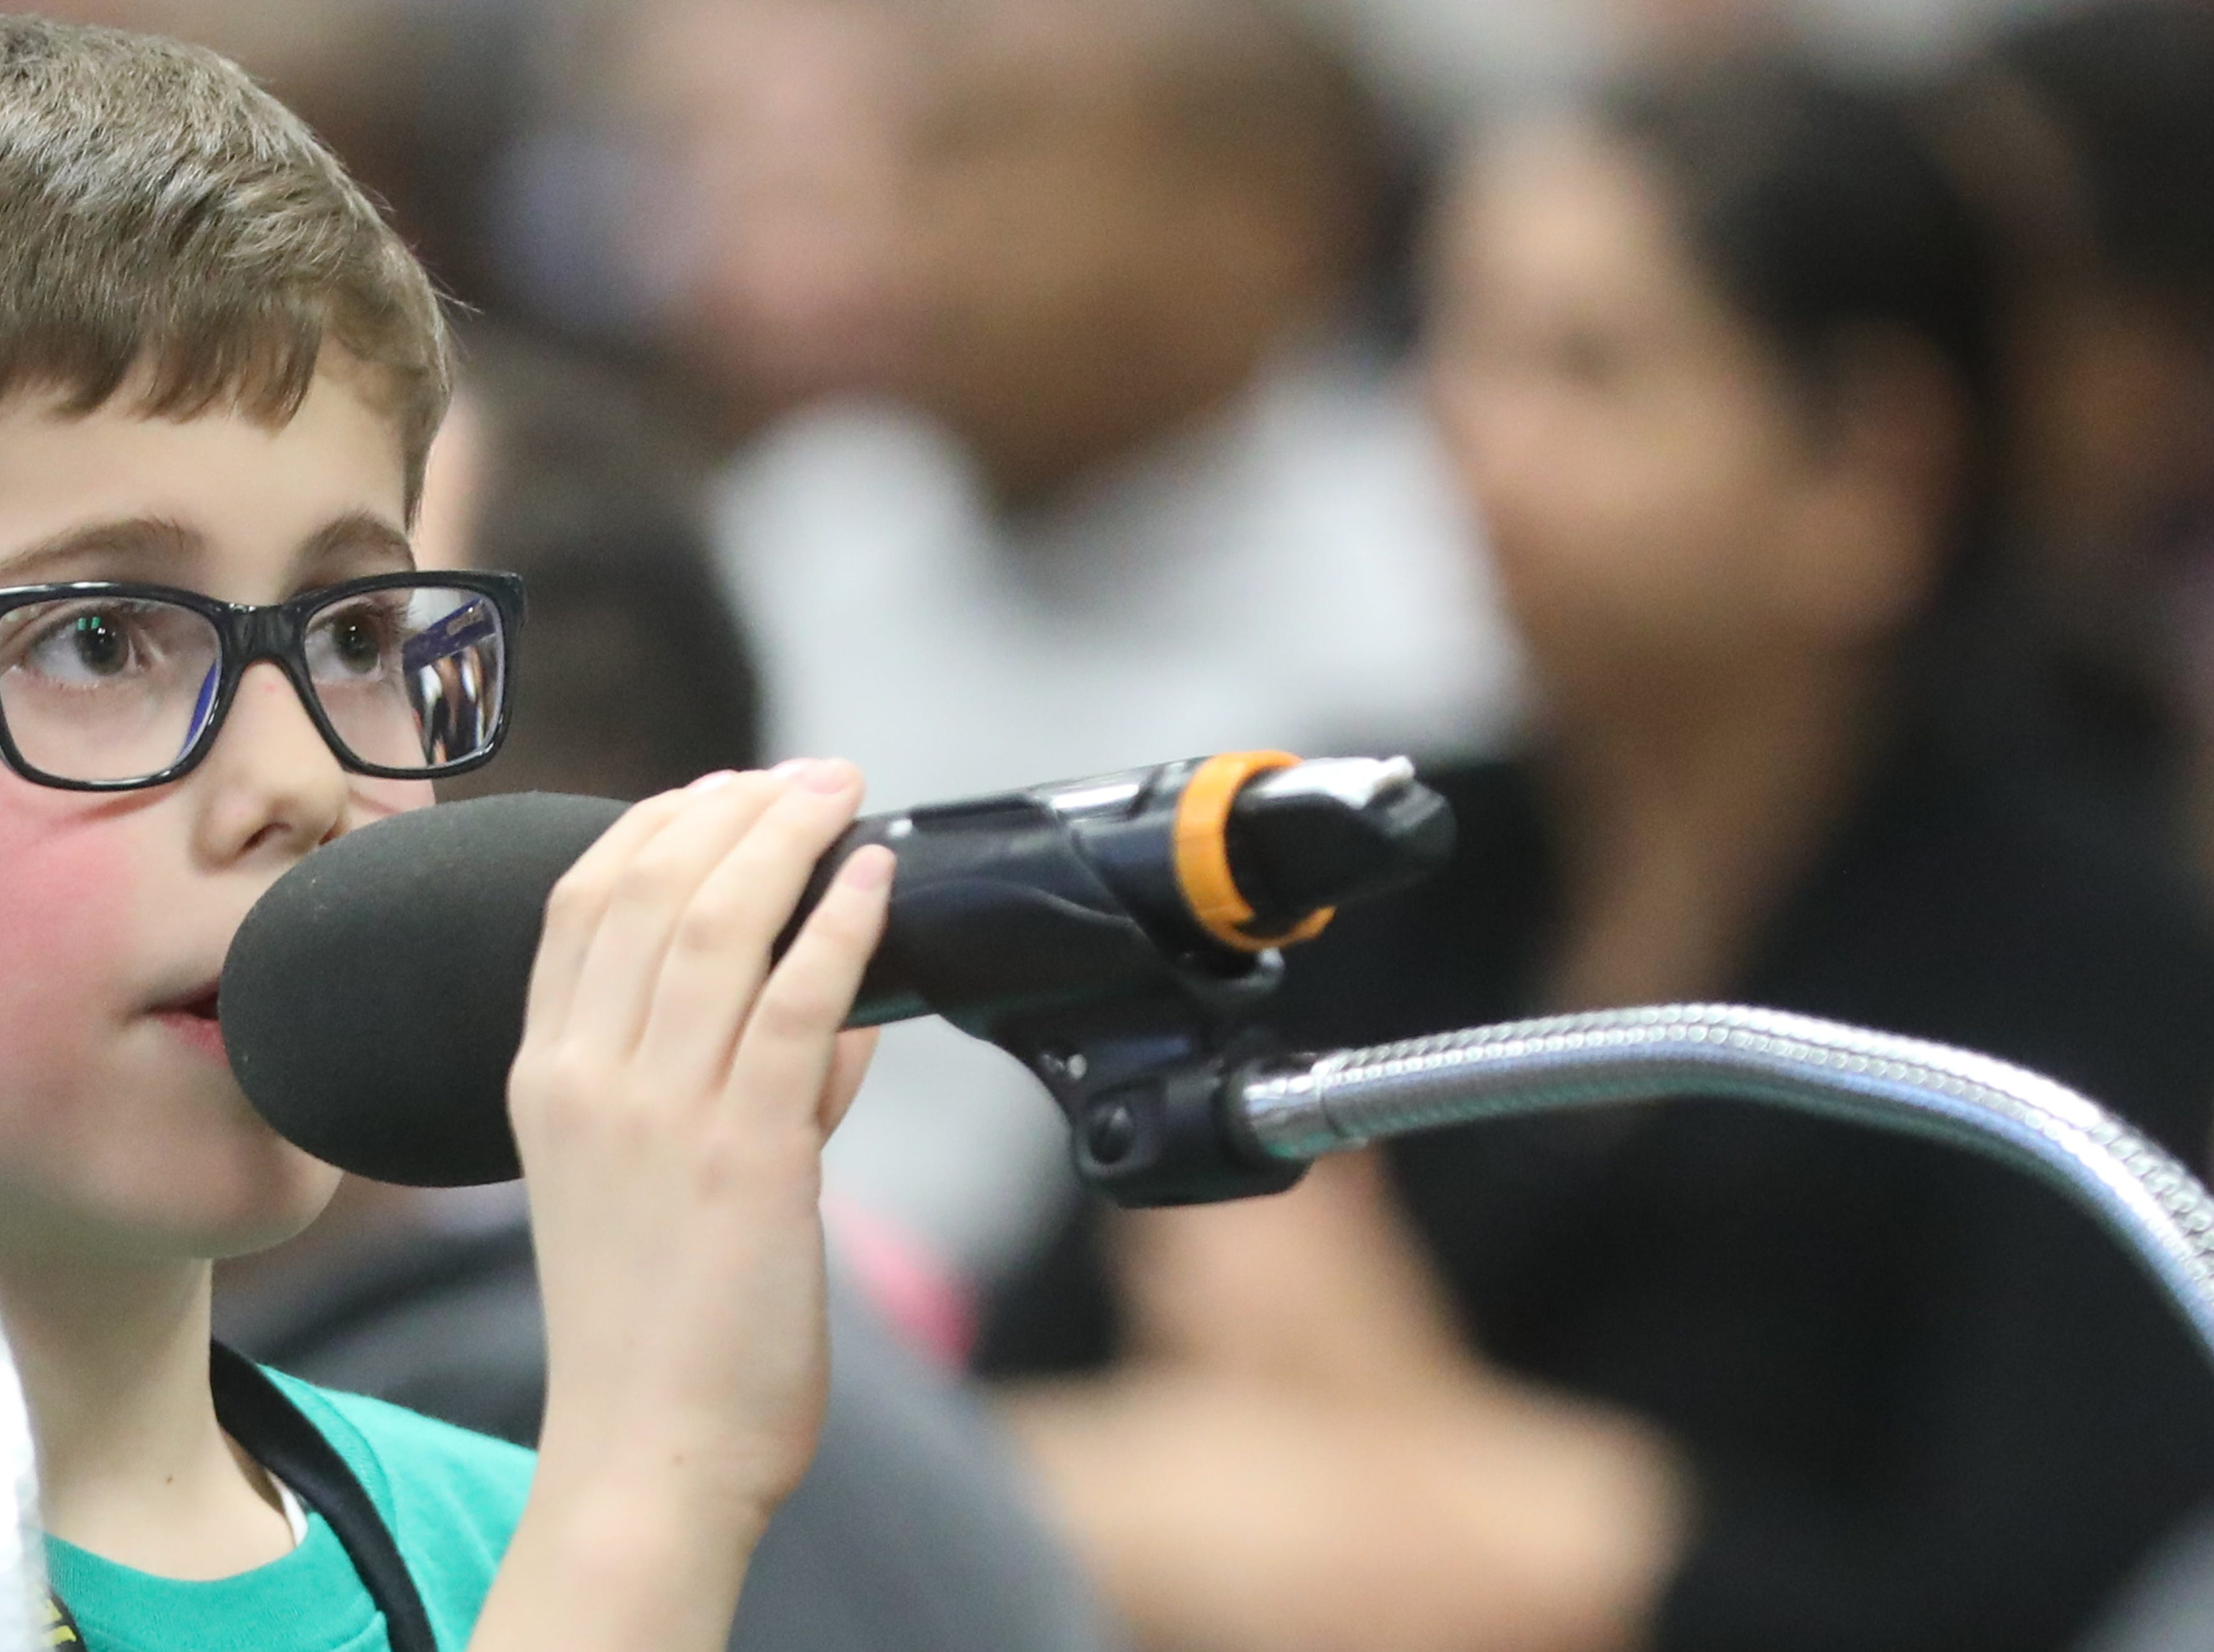 Alexi Pogrebinskiy, of Cliffside Park, competes in the first round of the 2019 North Jersey Spelling Bee, in Paramus. Thursday, March 14, 2019